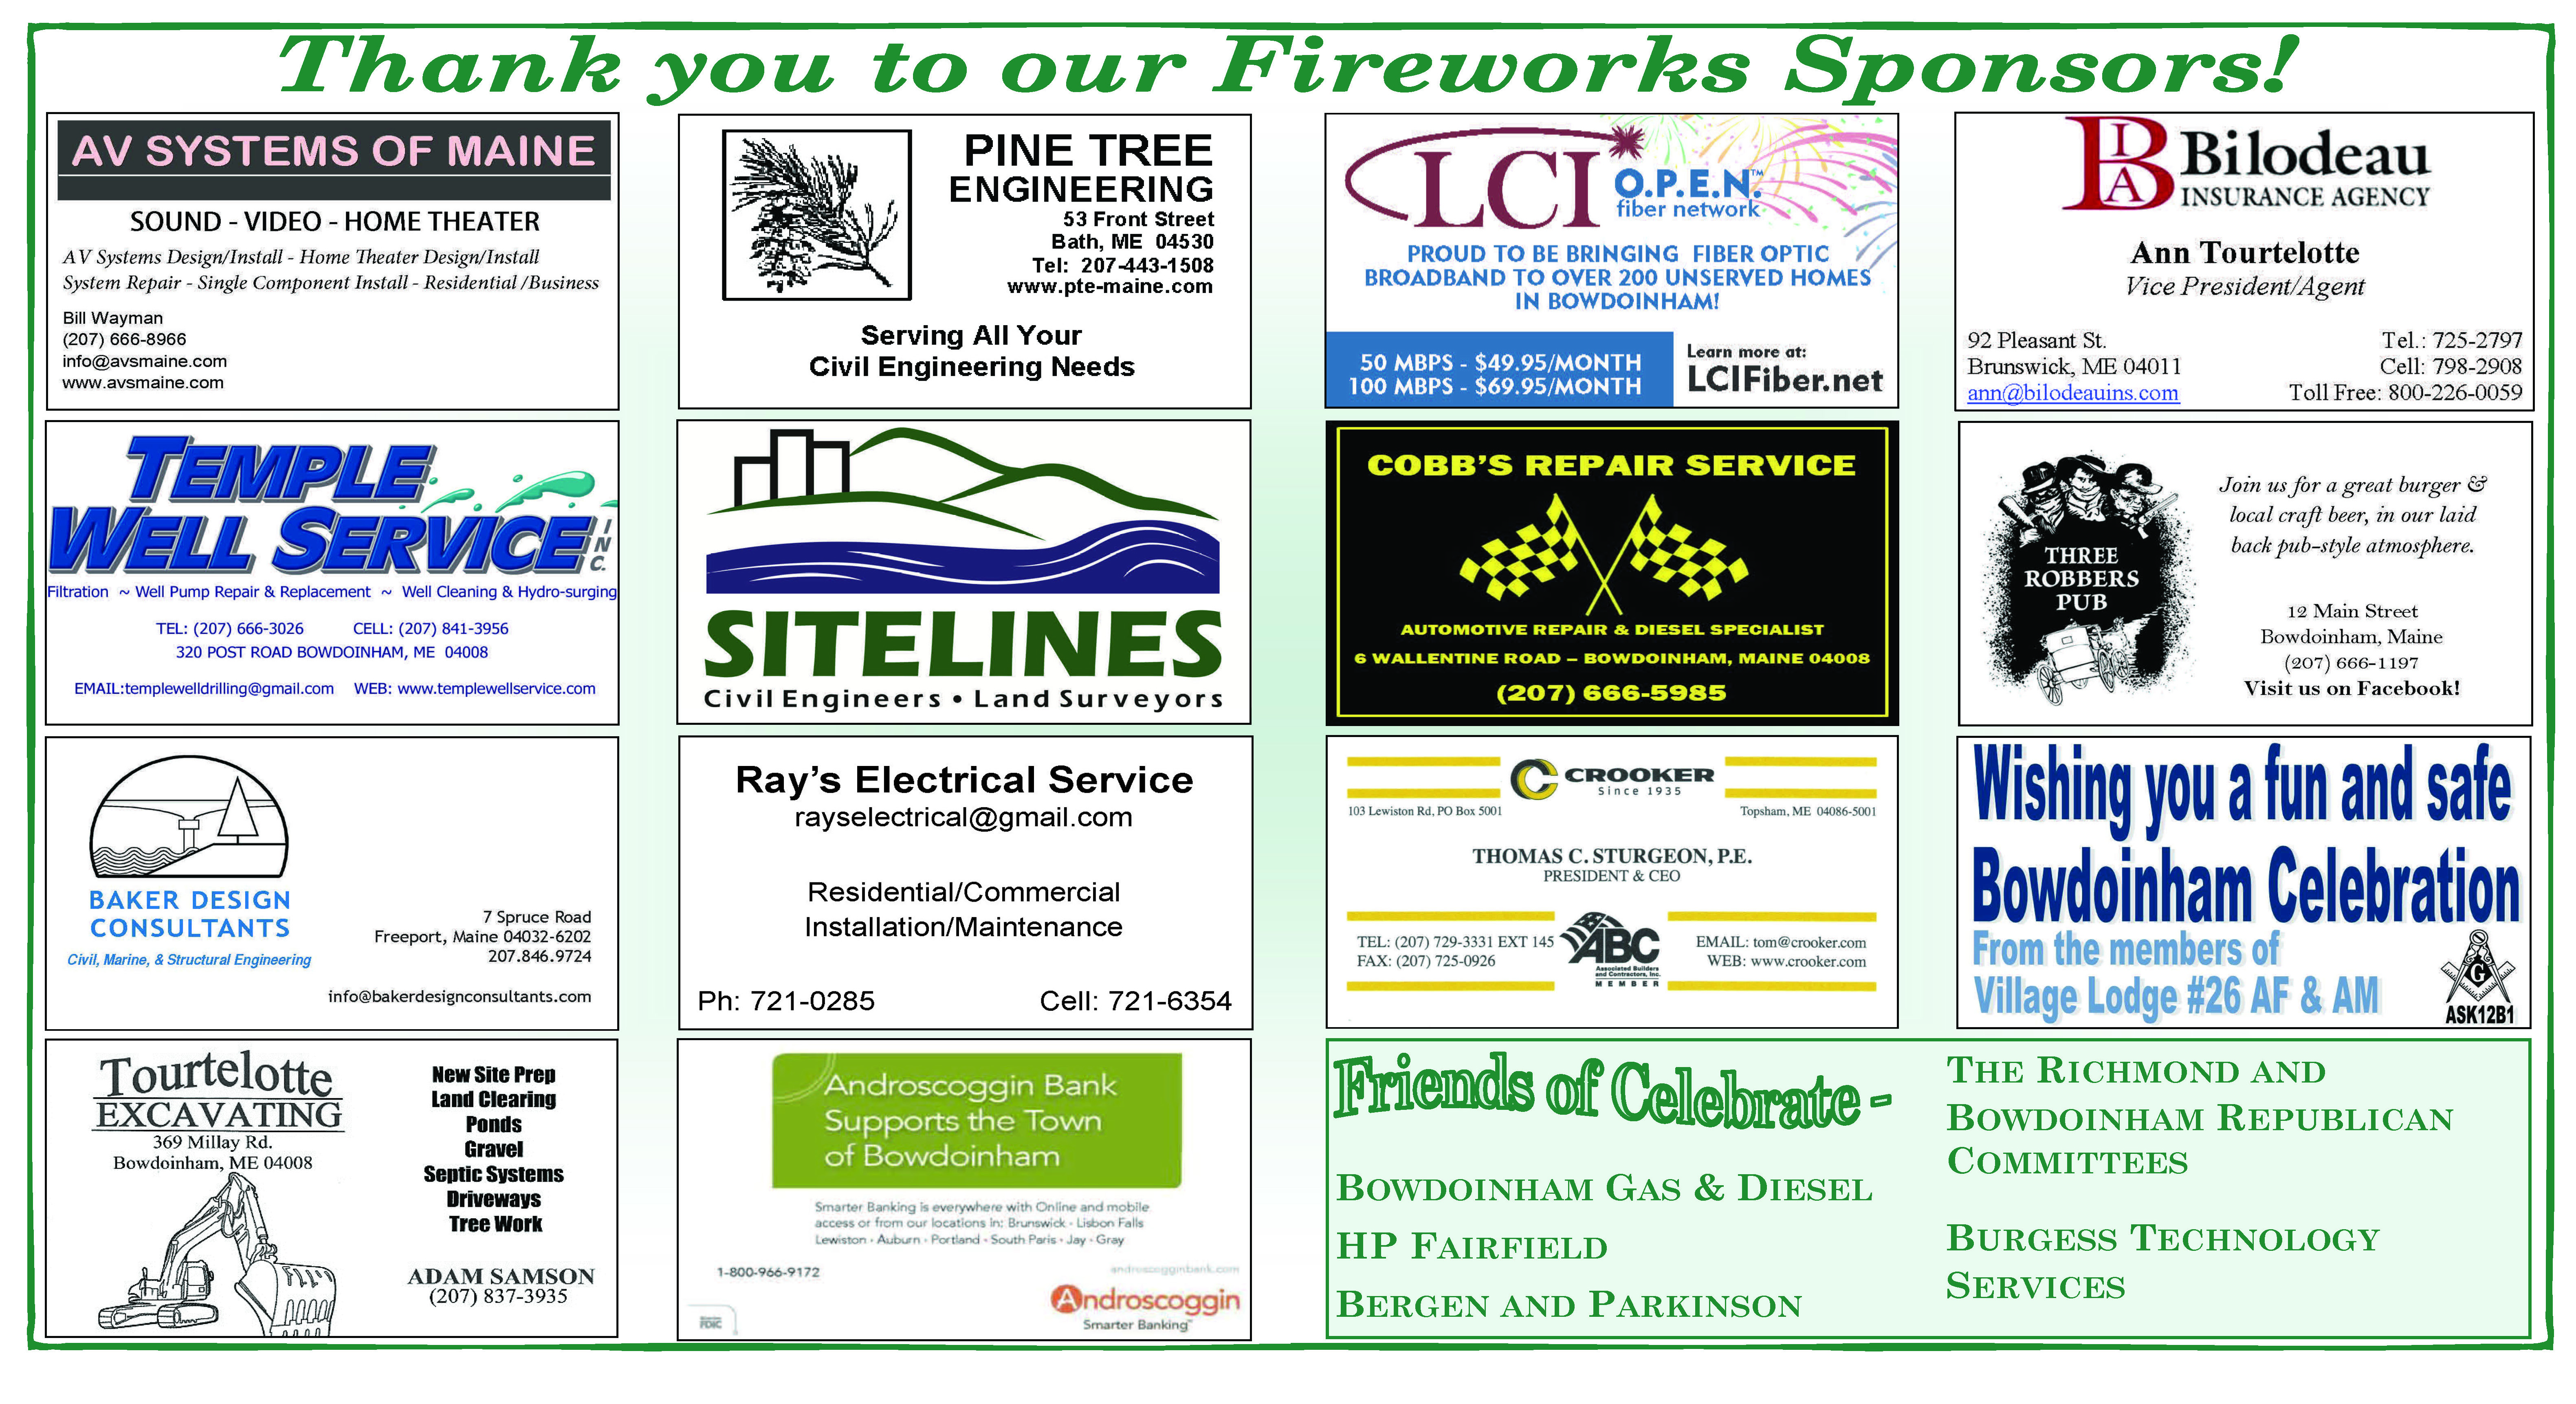 Thank you to our Fireworks Sponsors!